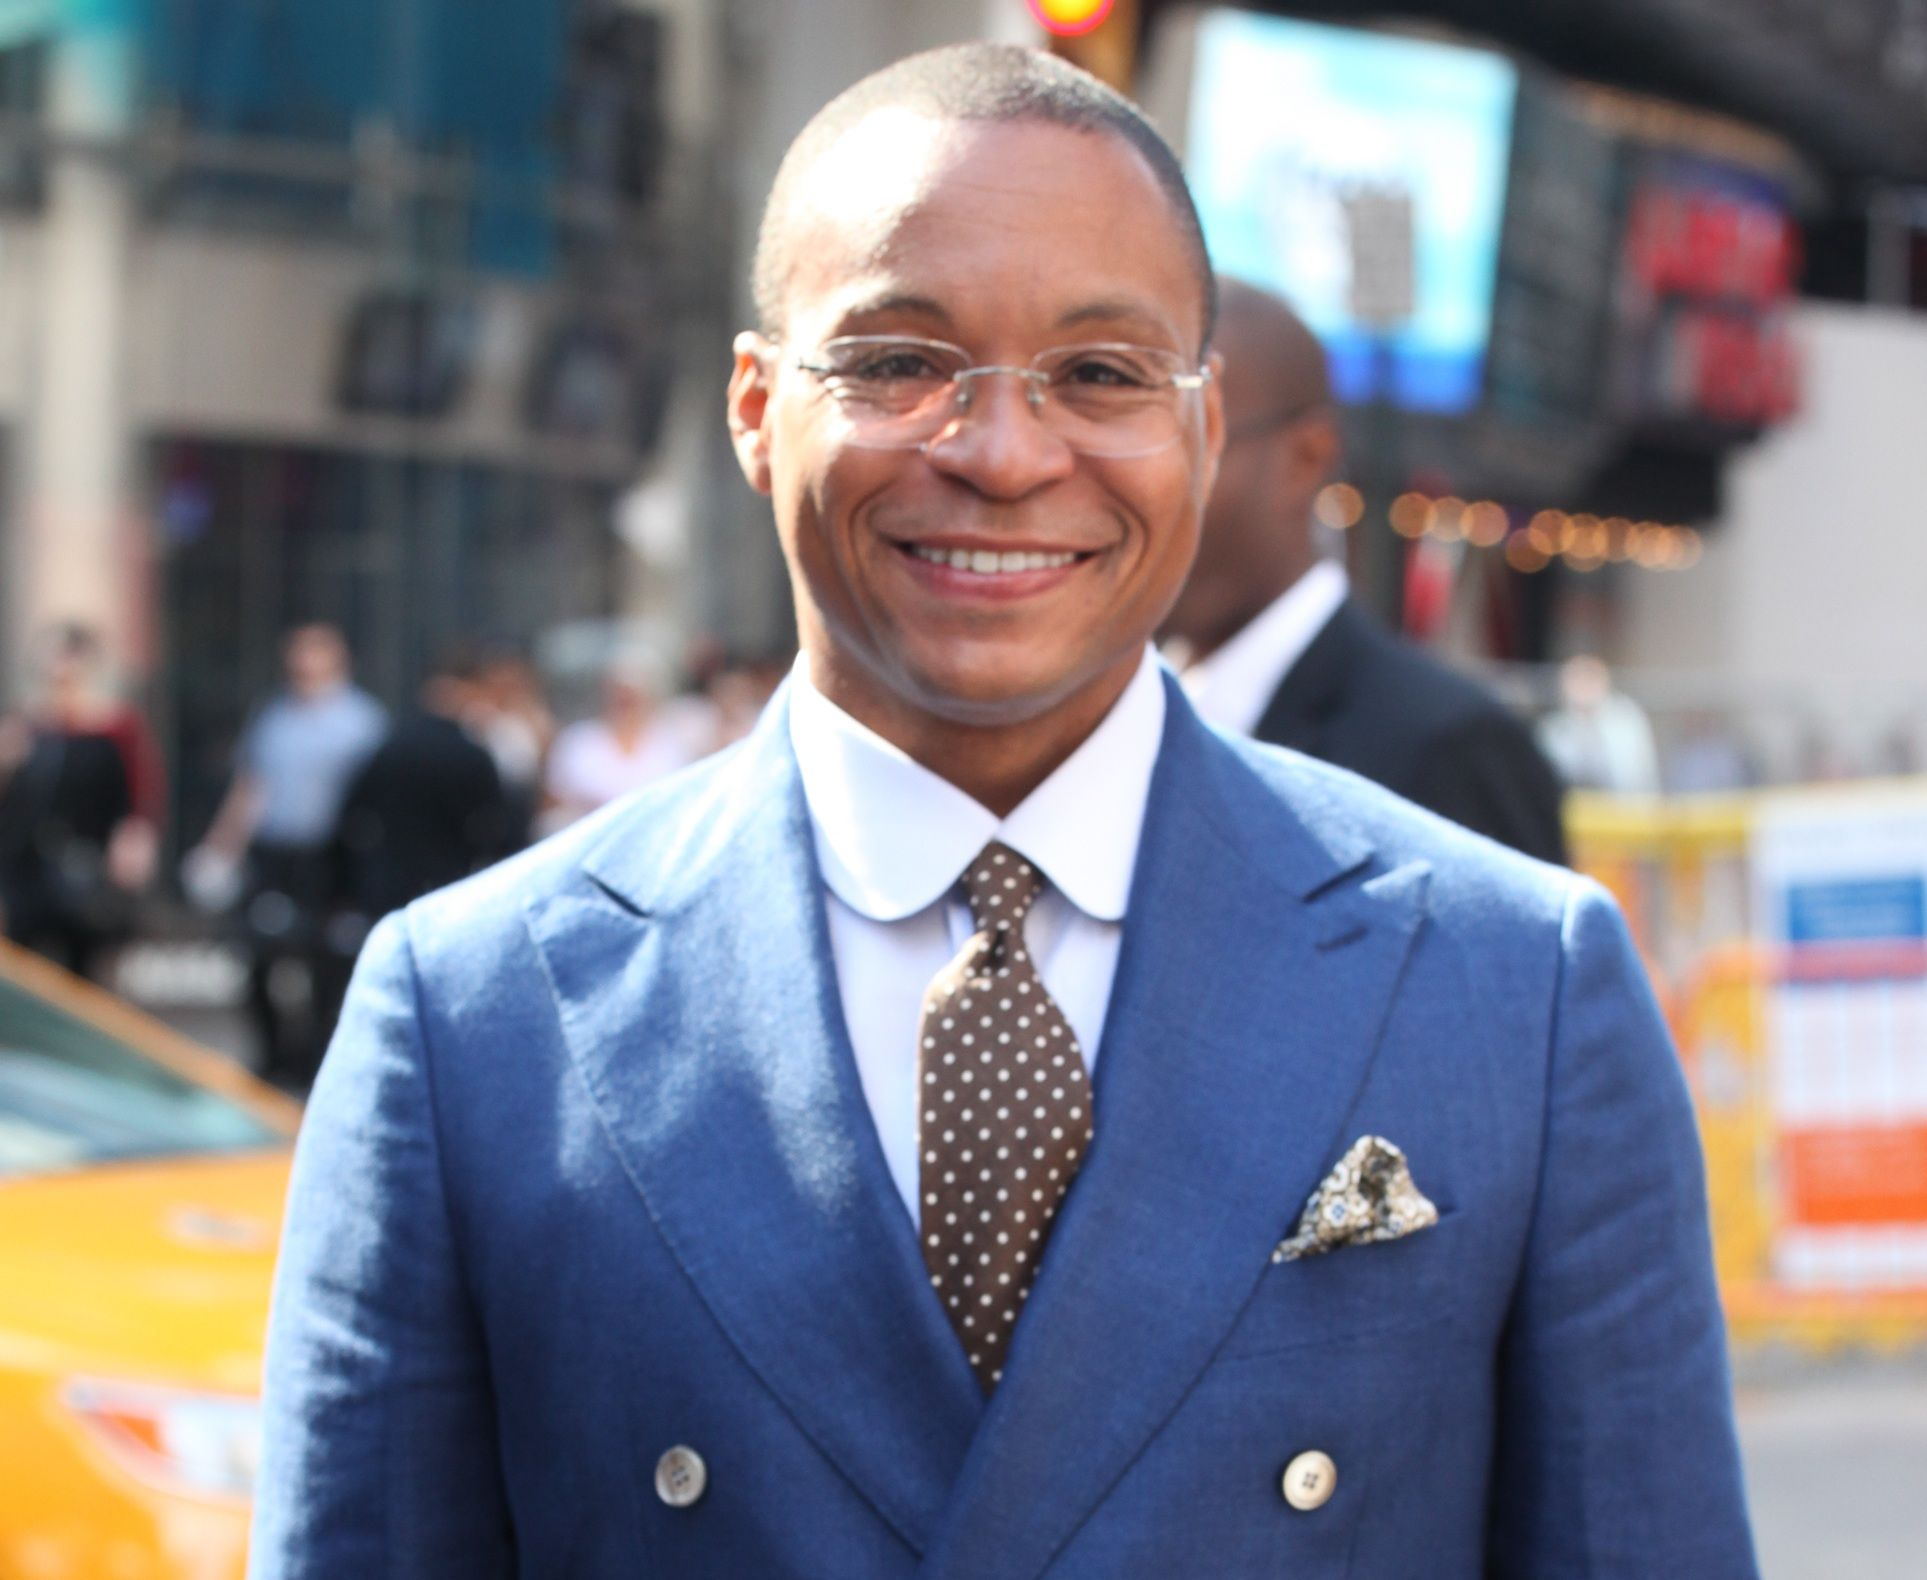 Gus Johnson Sportscaster on the Soccer Basketball and the